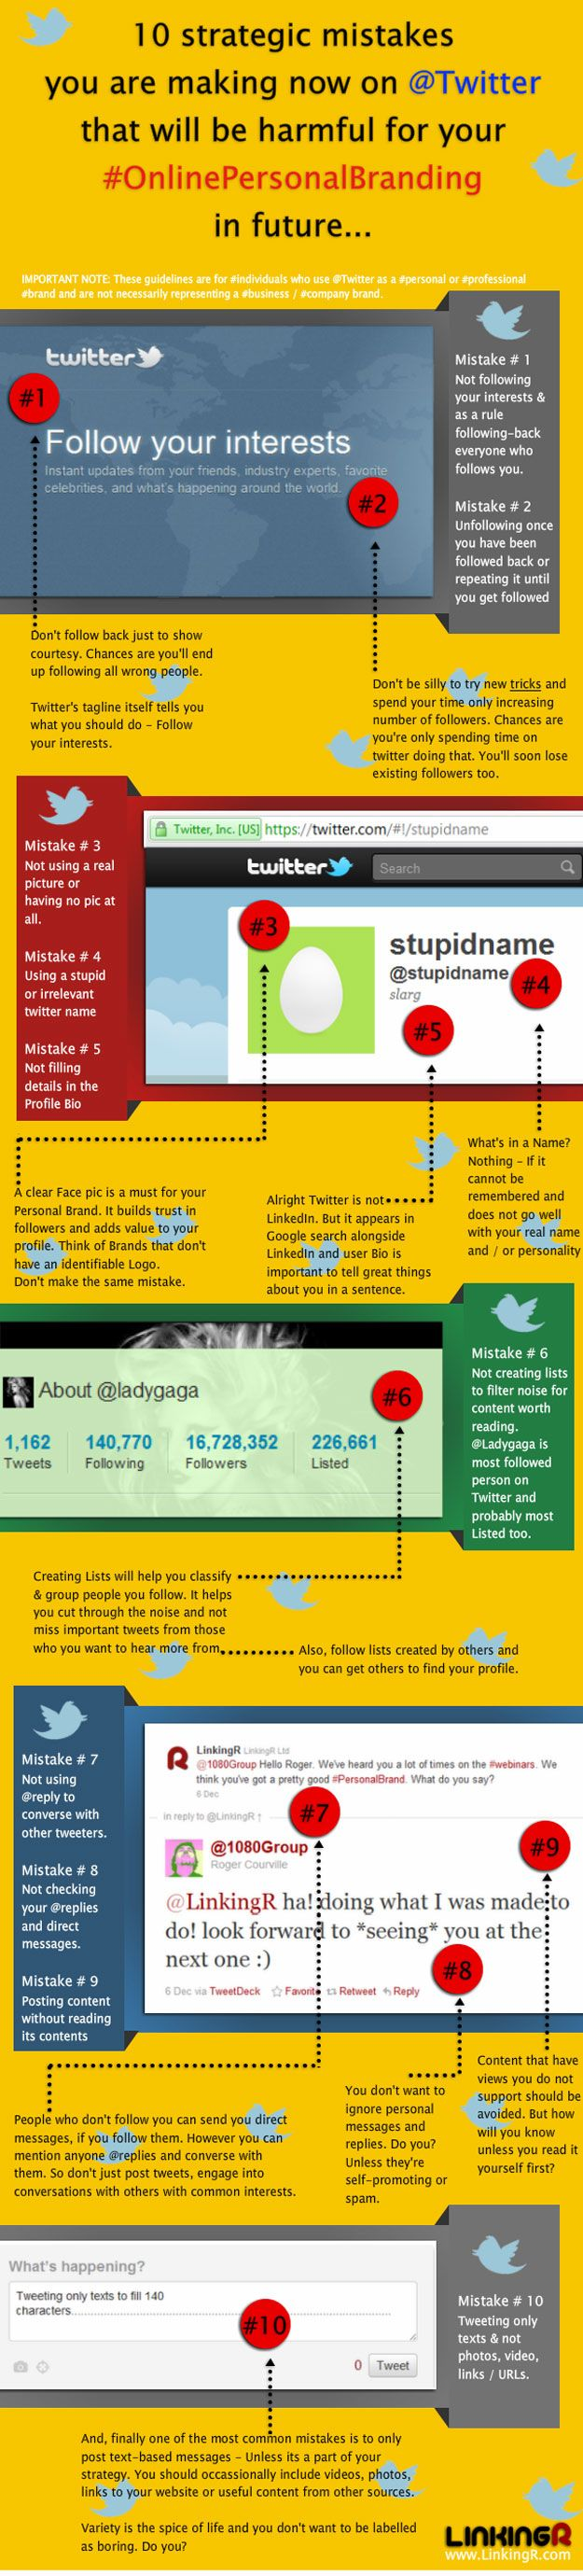 10 Strategic Mistakes you are making on Twitter. #Infographic